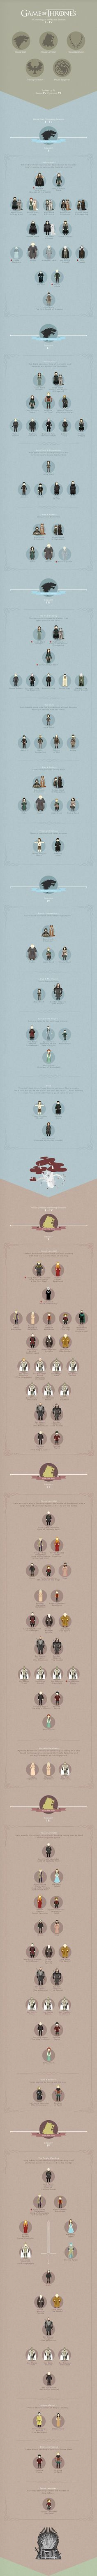 The Game of Thrones Infographic  Stark - lannister